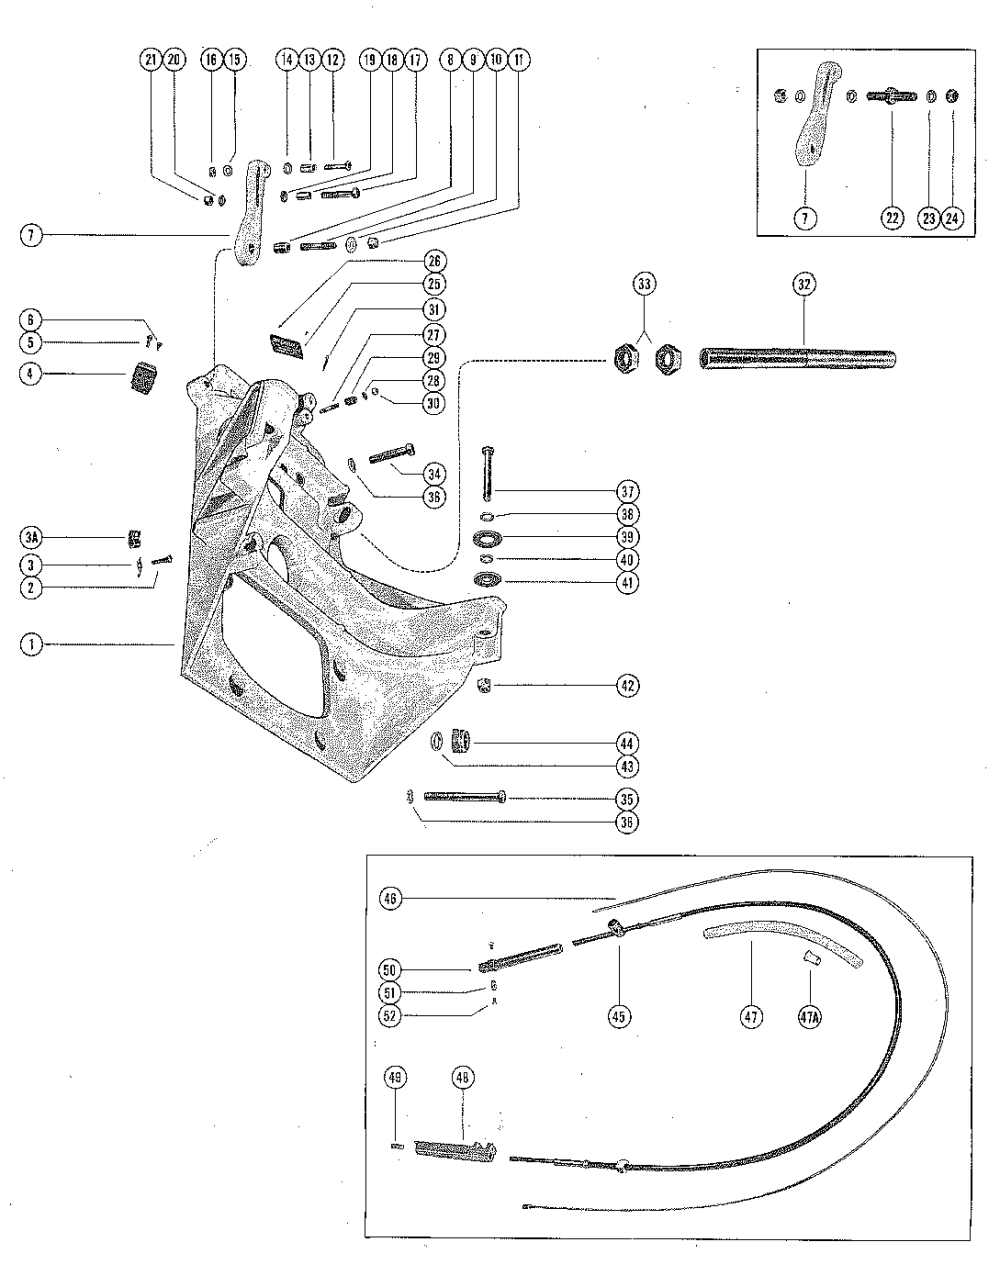 medium resolution of mercury mercruiser i 1963 1534570 thru 1684187 transom plate and shift cable